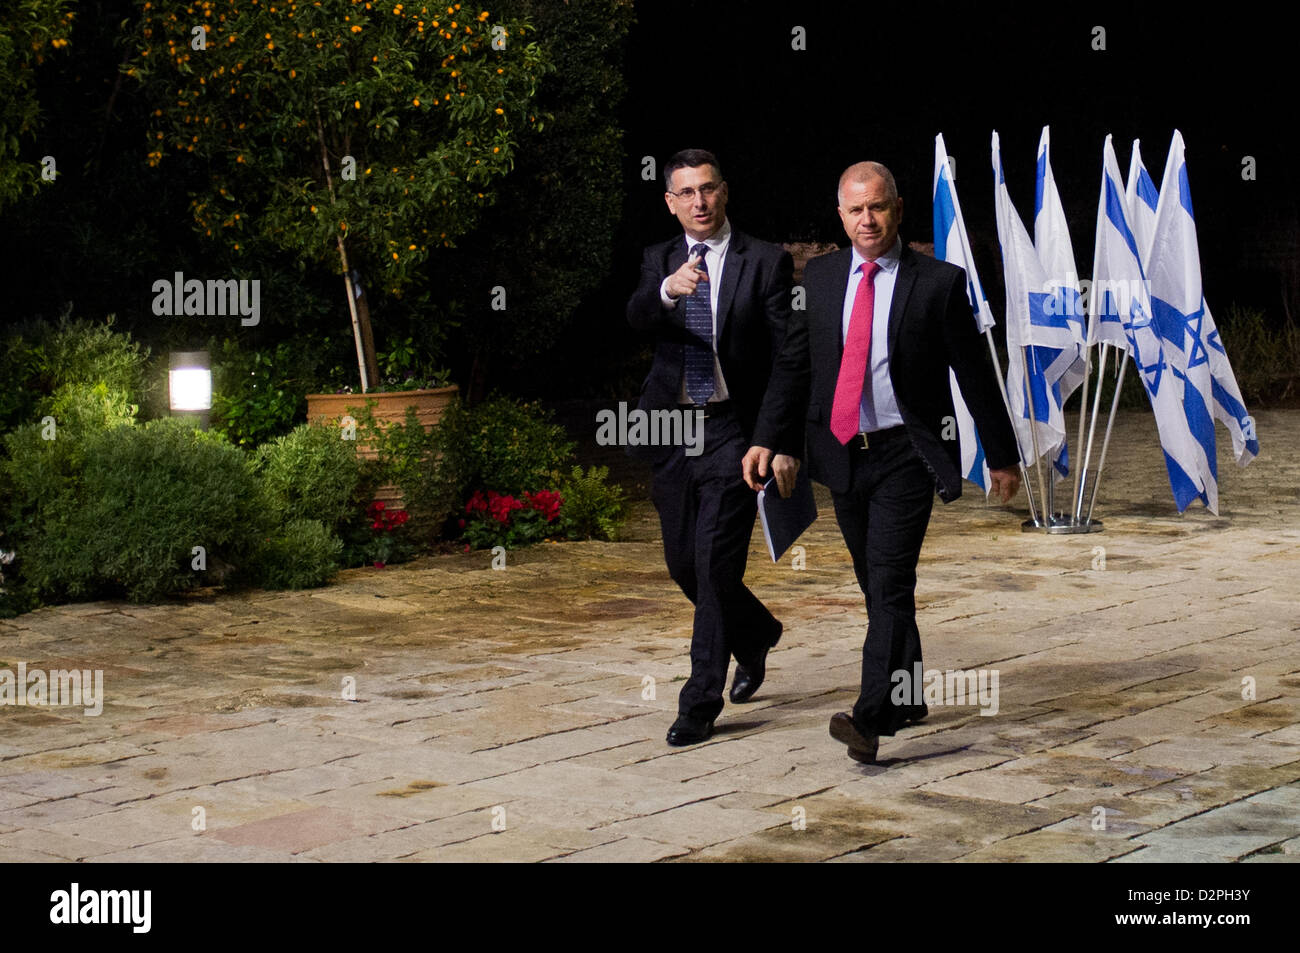 Incumbent Minister of Education in outgoing government, Gideon Saar (L), representing Likud-Beitenu, is escorted - Stock Image